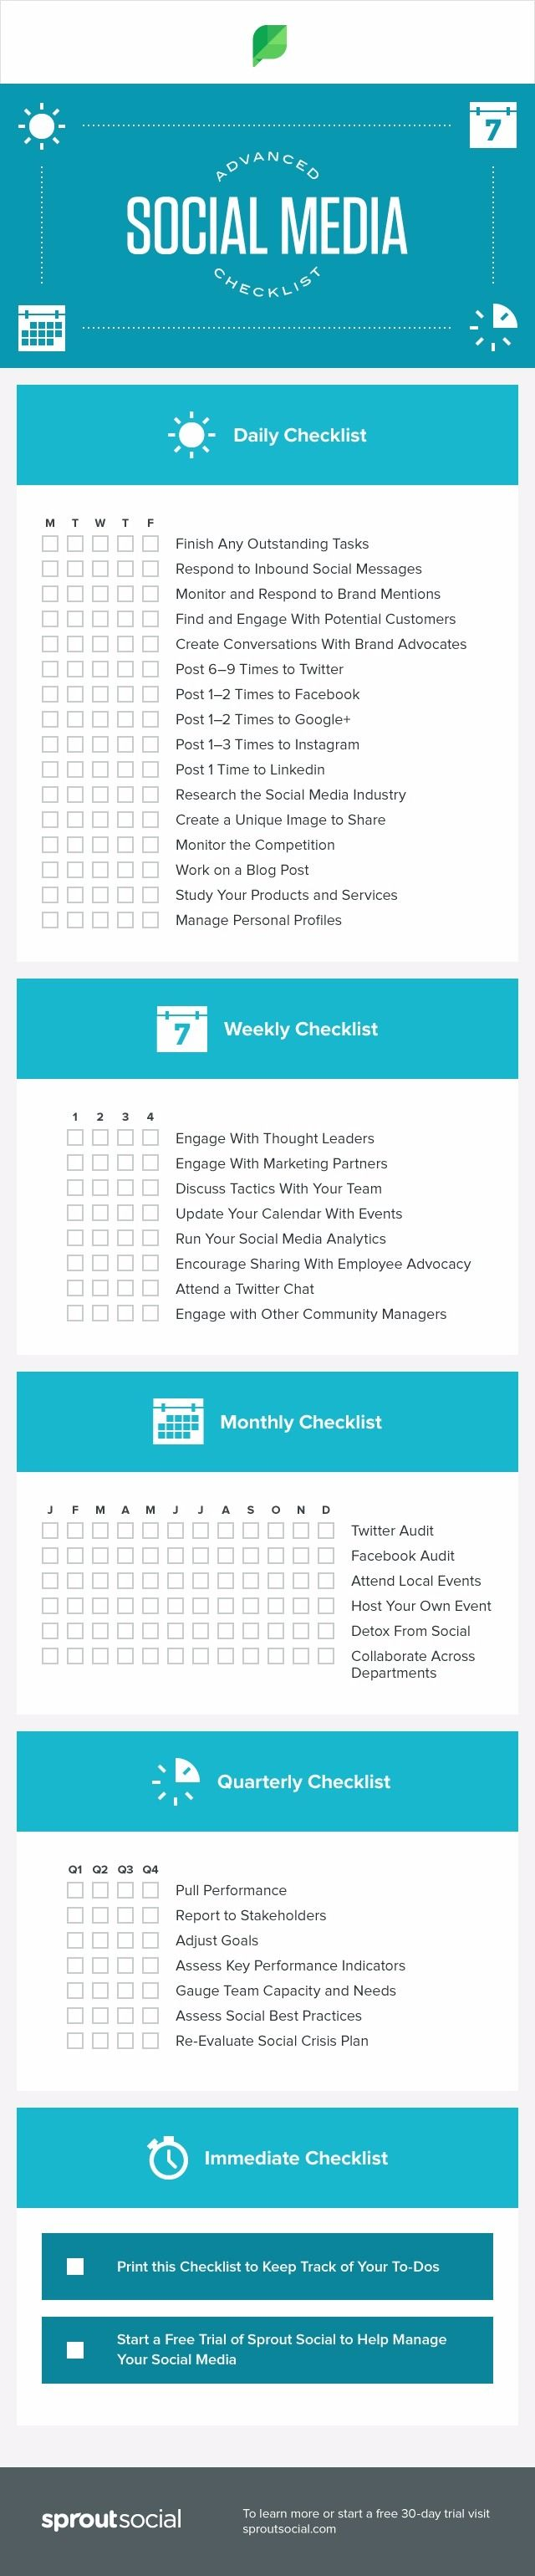 Your Complete Social Media Checklist